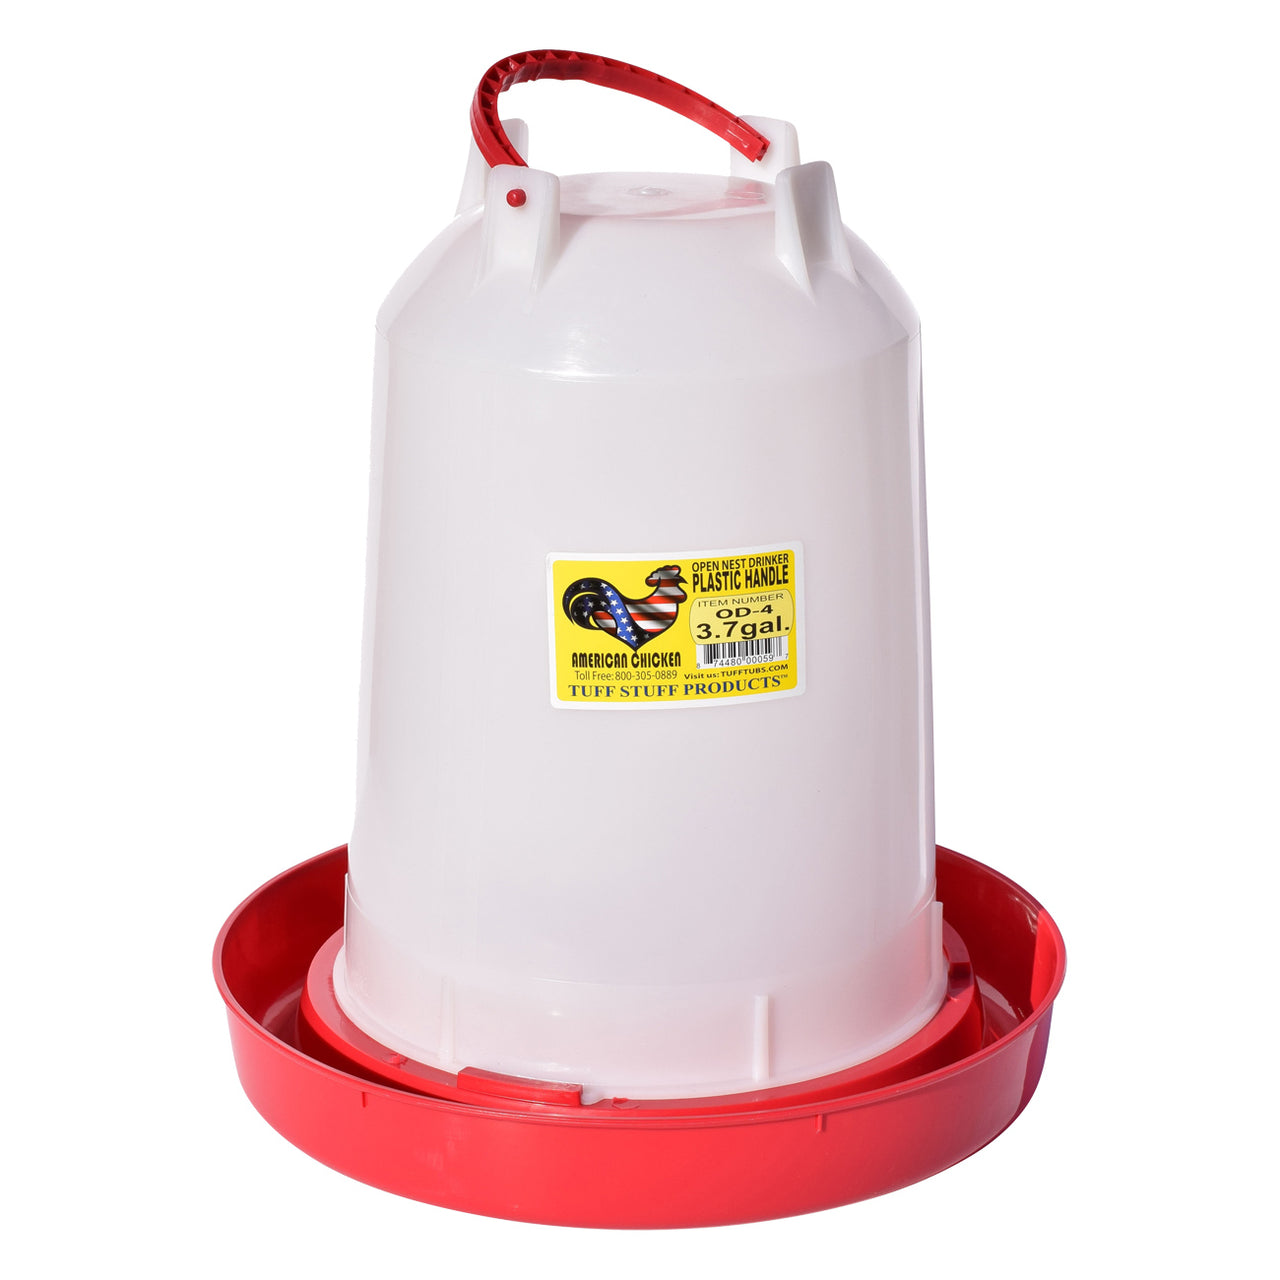 Tuff Stuff Poultry Open Nest Drinker Plastic Handle - 2.9Gal - Poultry Feeders Drinkers Tuff Stuff - Canada